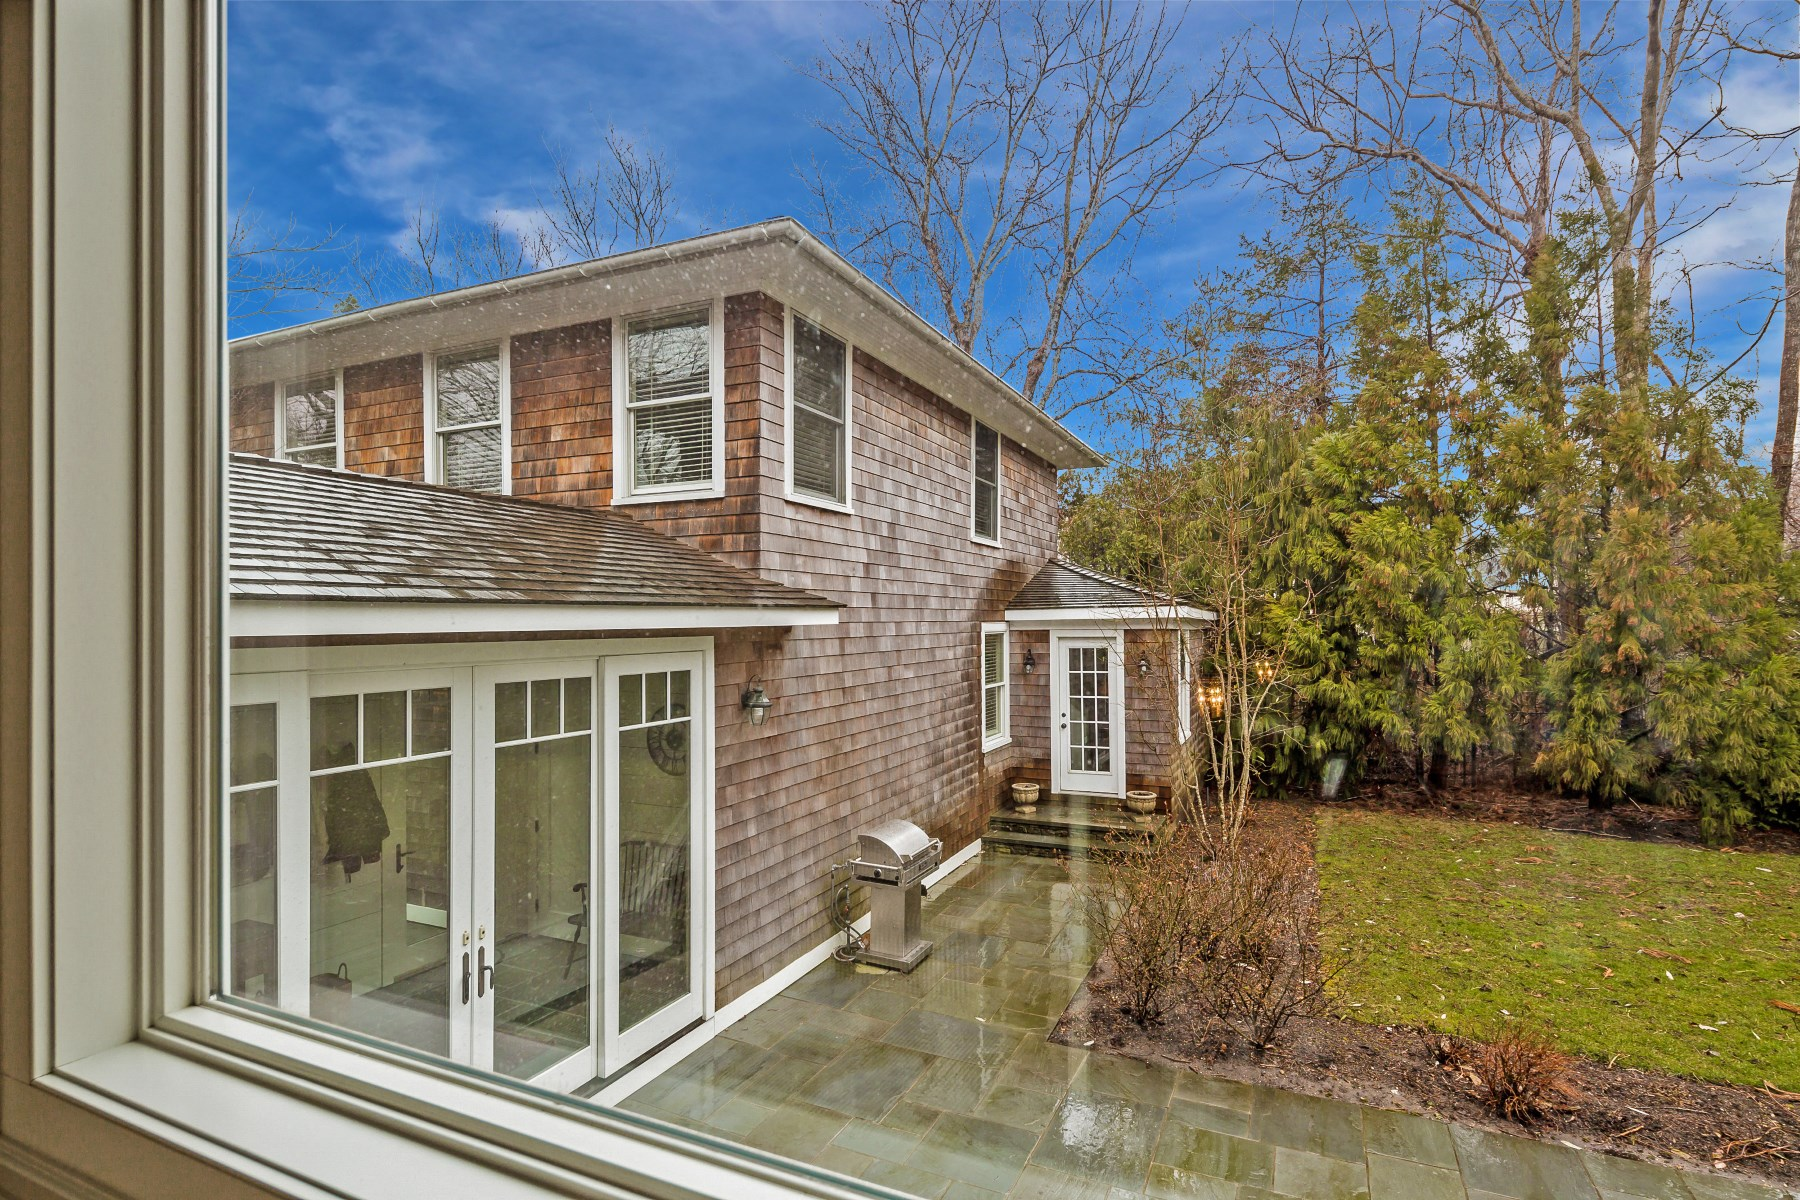 Single Family Home for Rent at On East Hampton Village Doorstep 61 Osborne Lane, East Hampton, New York 11937 United States